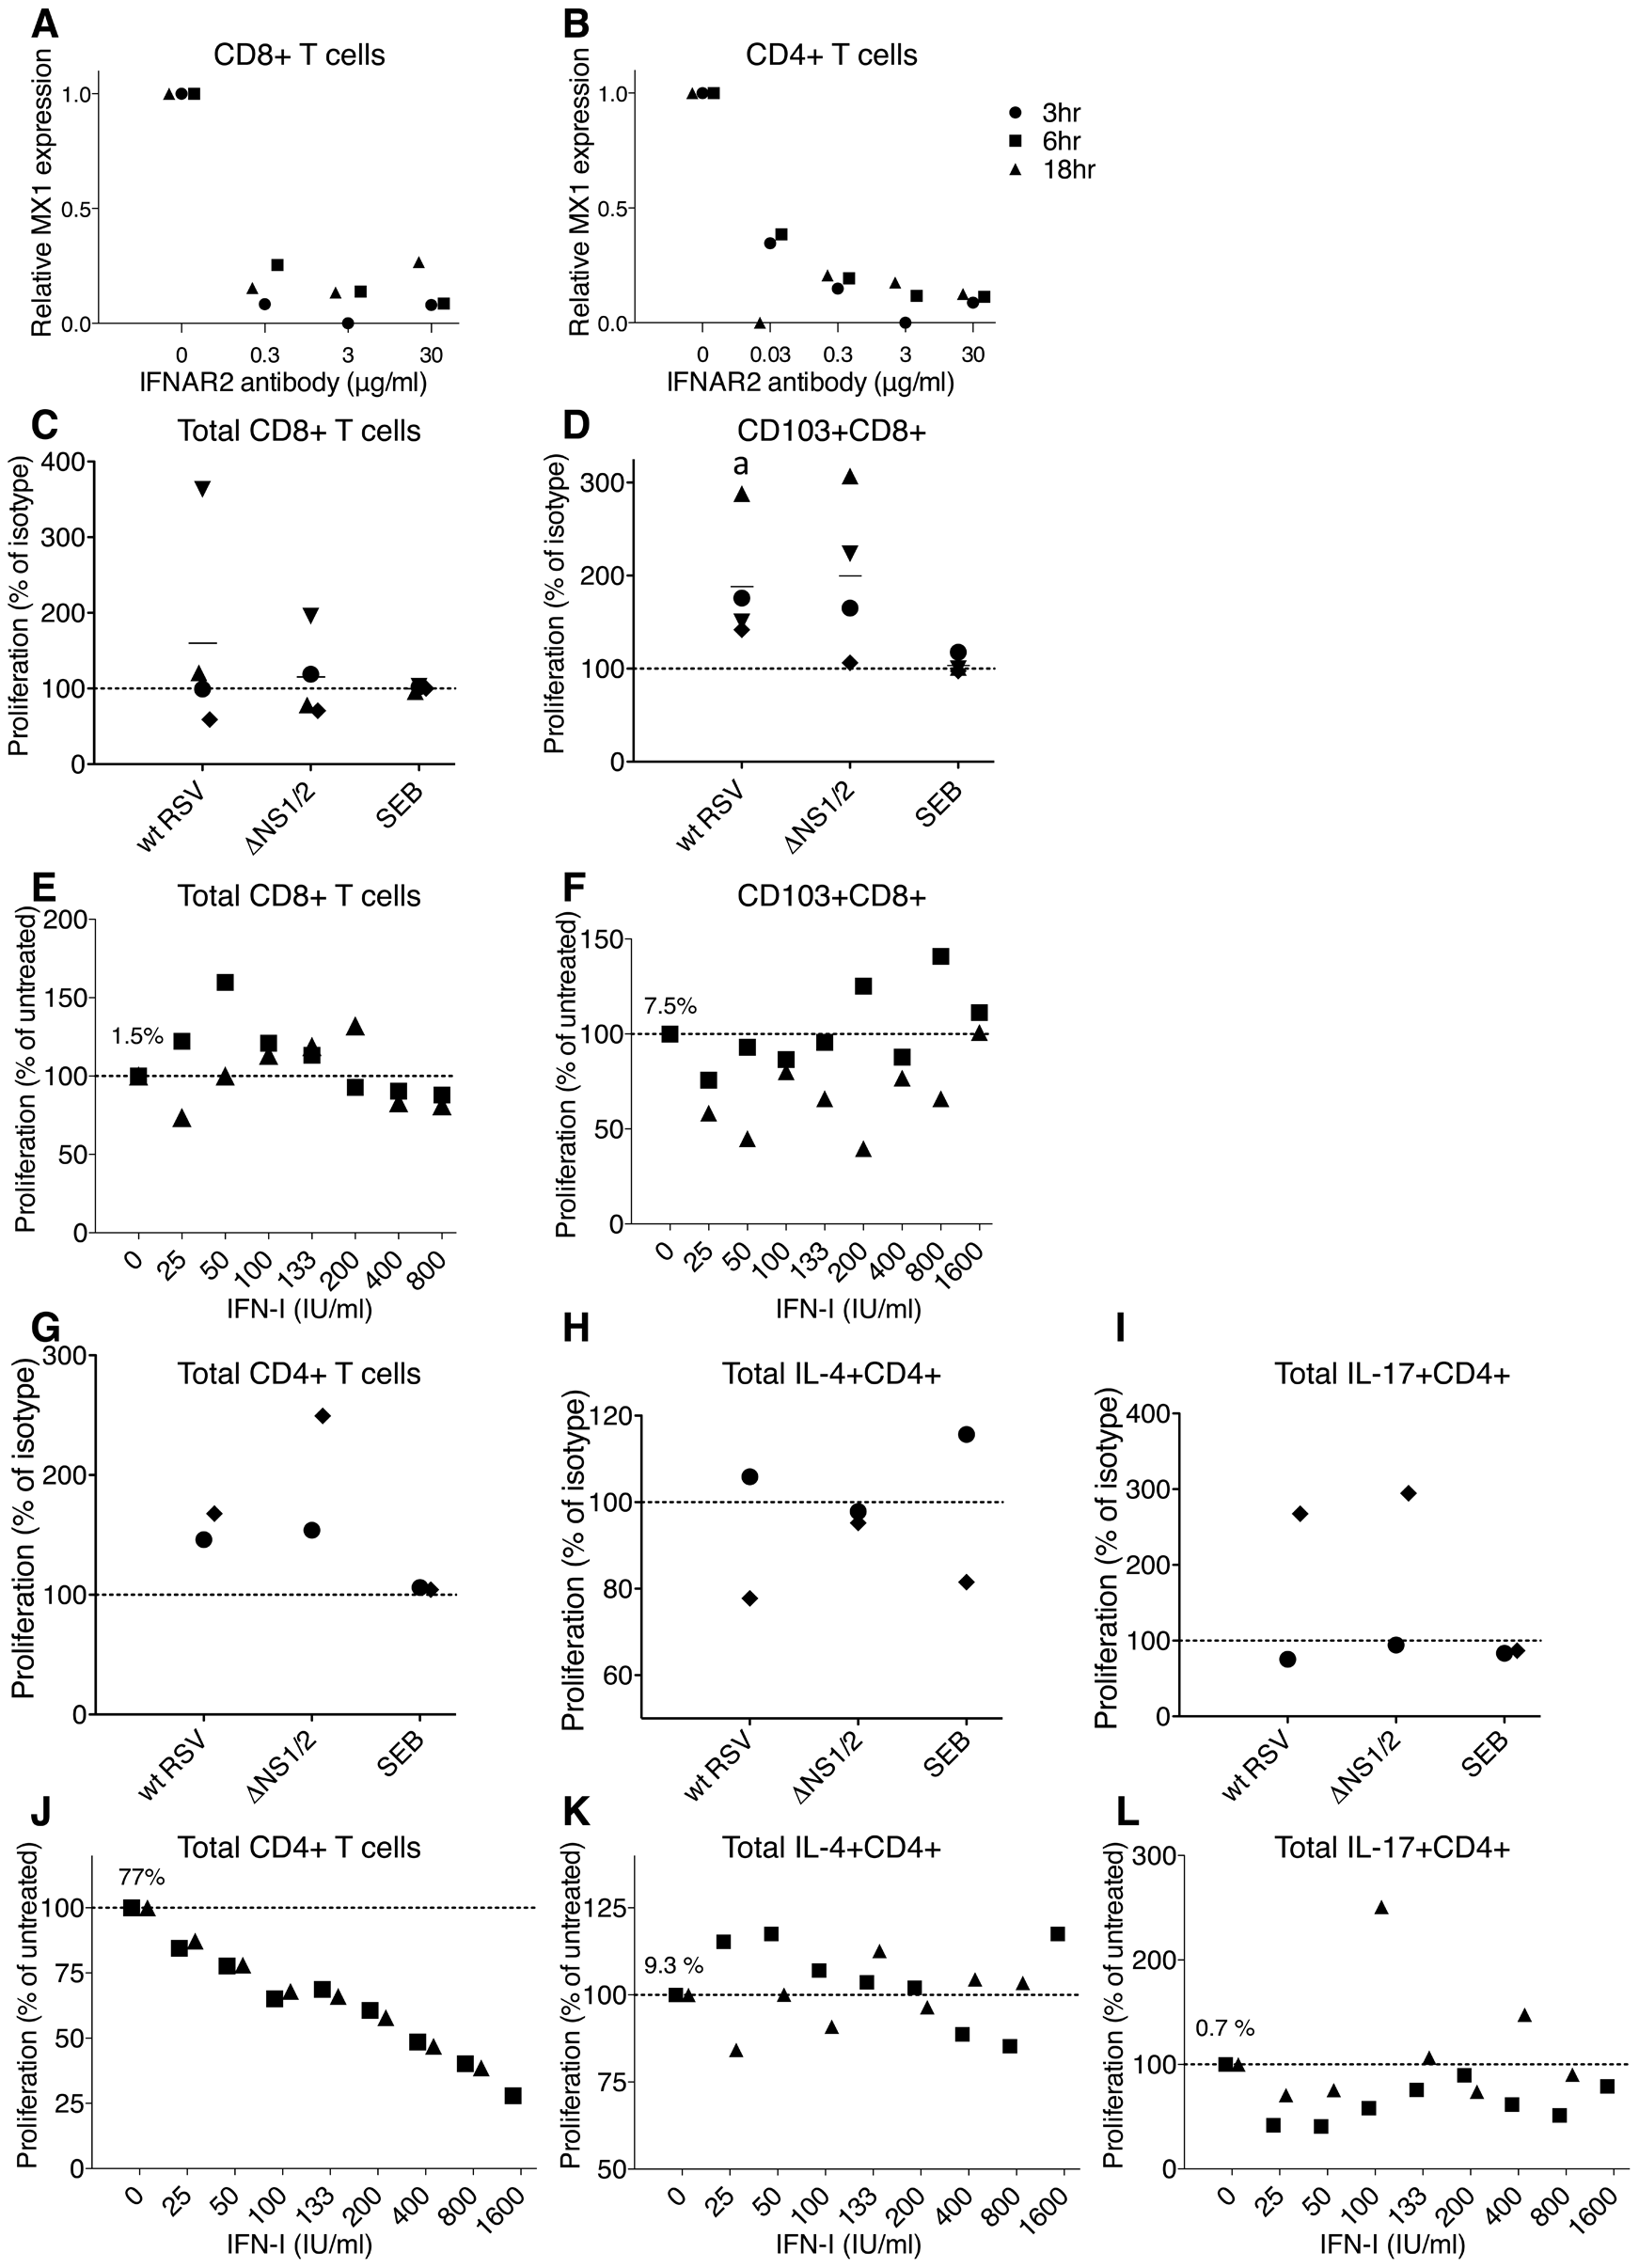 Role of IFN-I in the proliferation of CD8+ and CD4+ T cells.